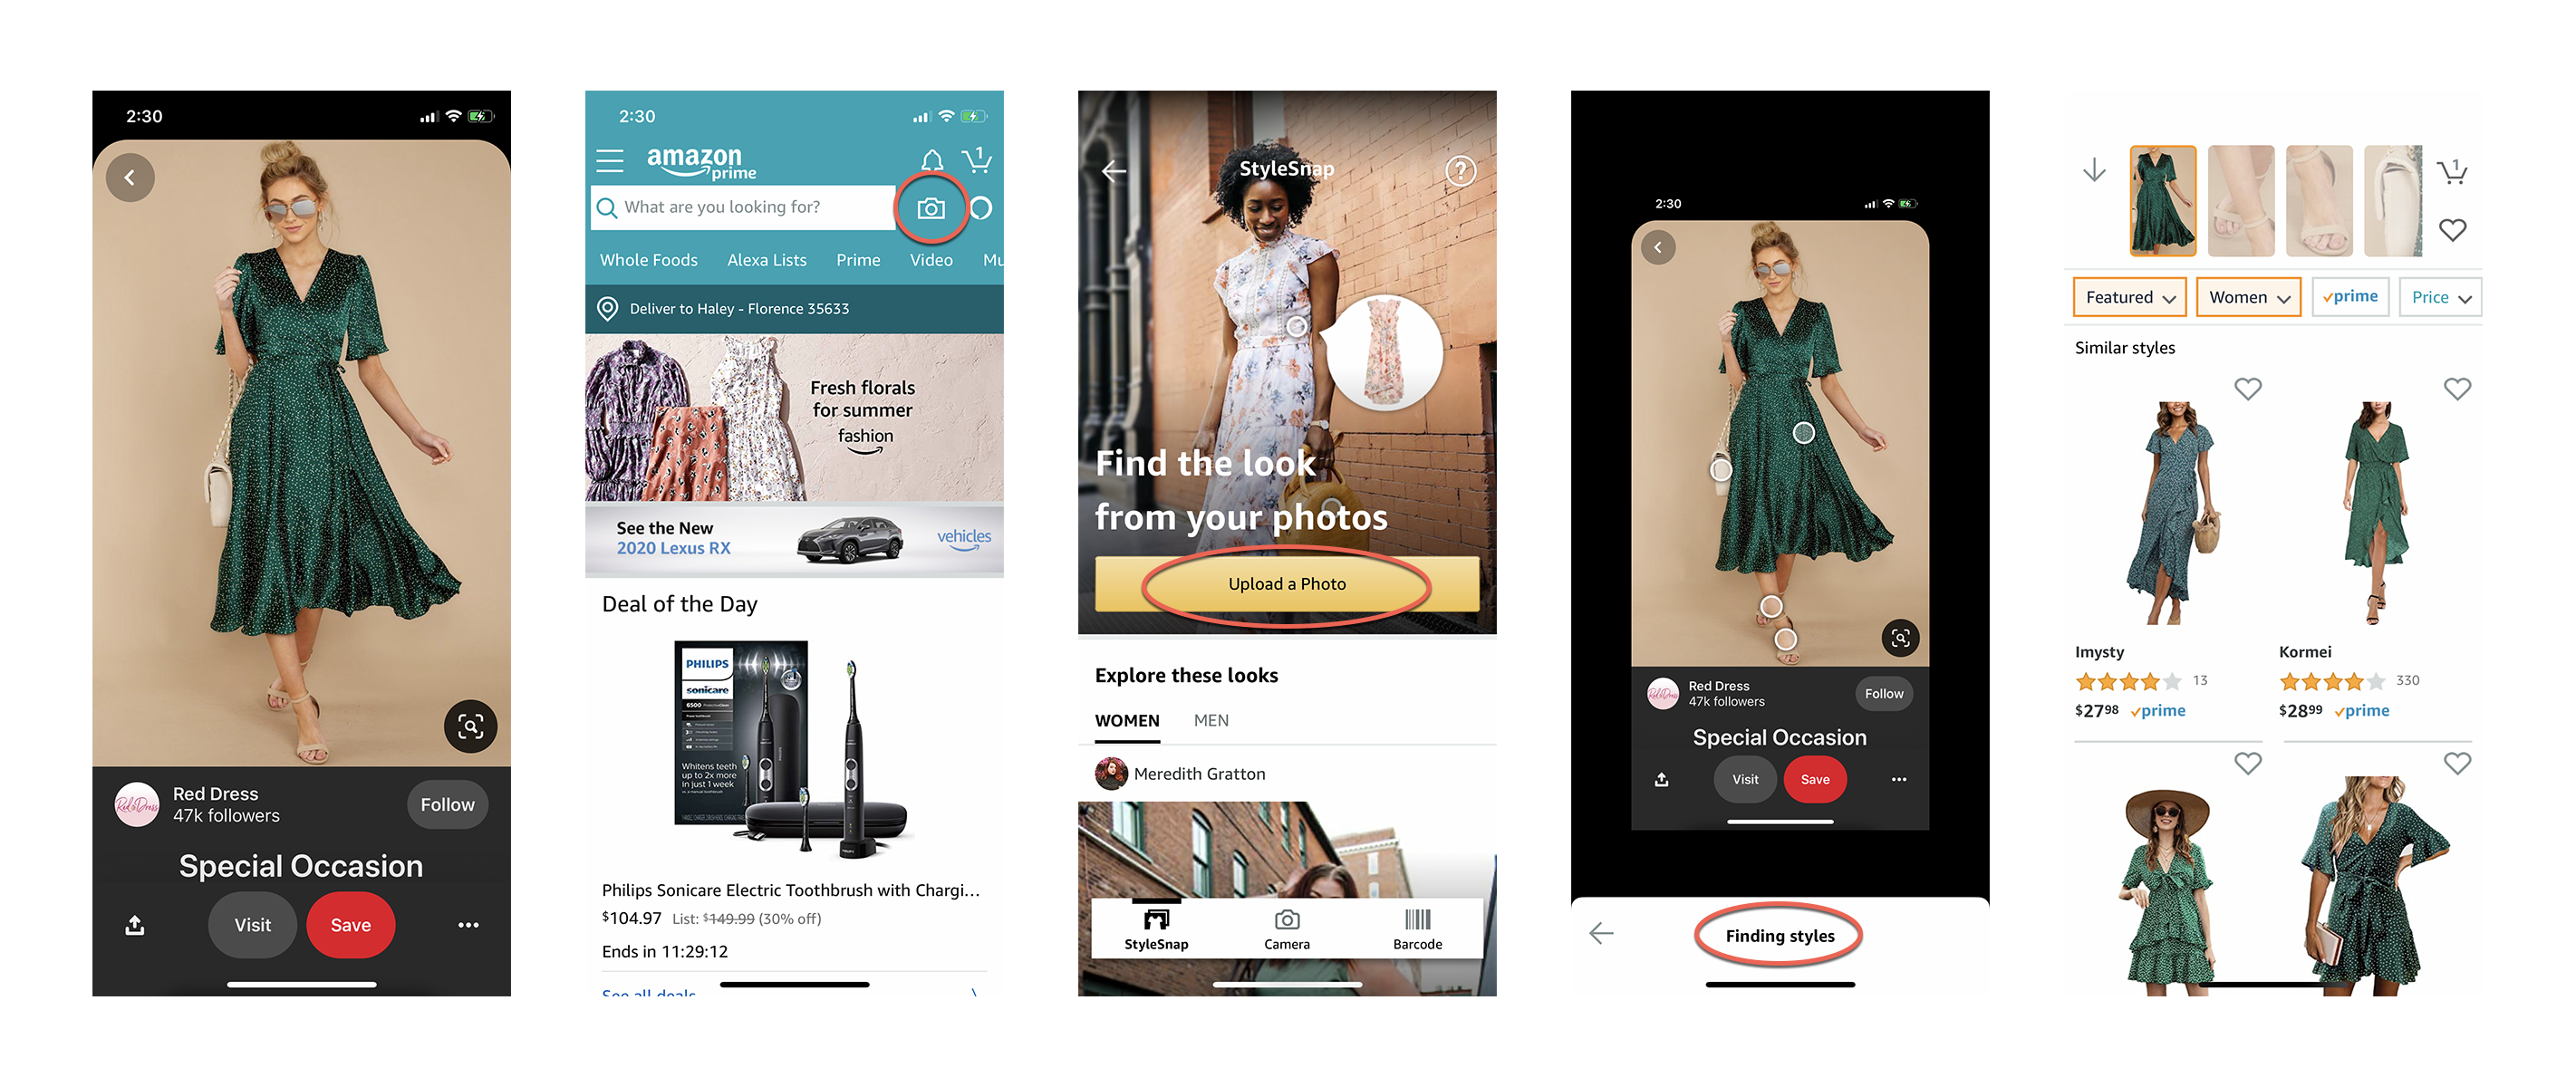 3-ways-visual-search-can-boost-your-brand-2 3 Ways Visual Search Can Boost Your Brand